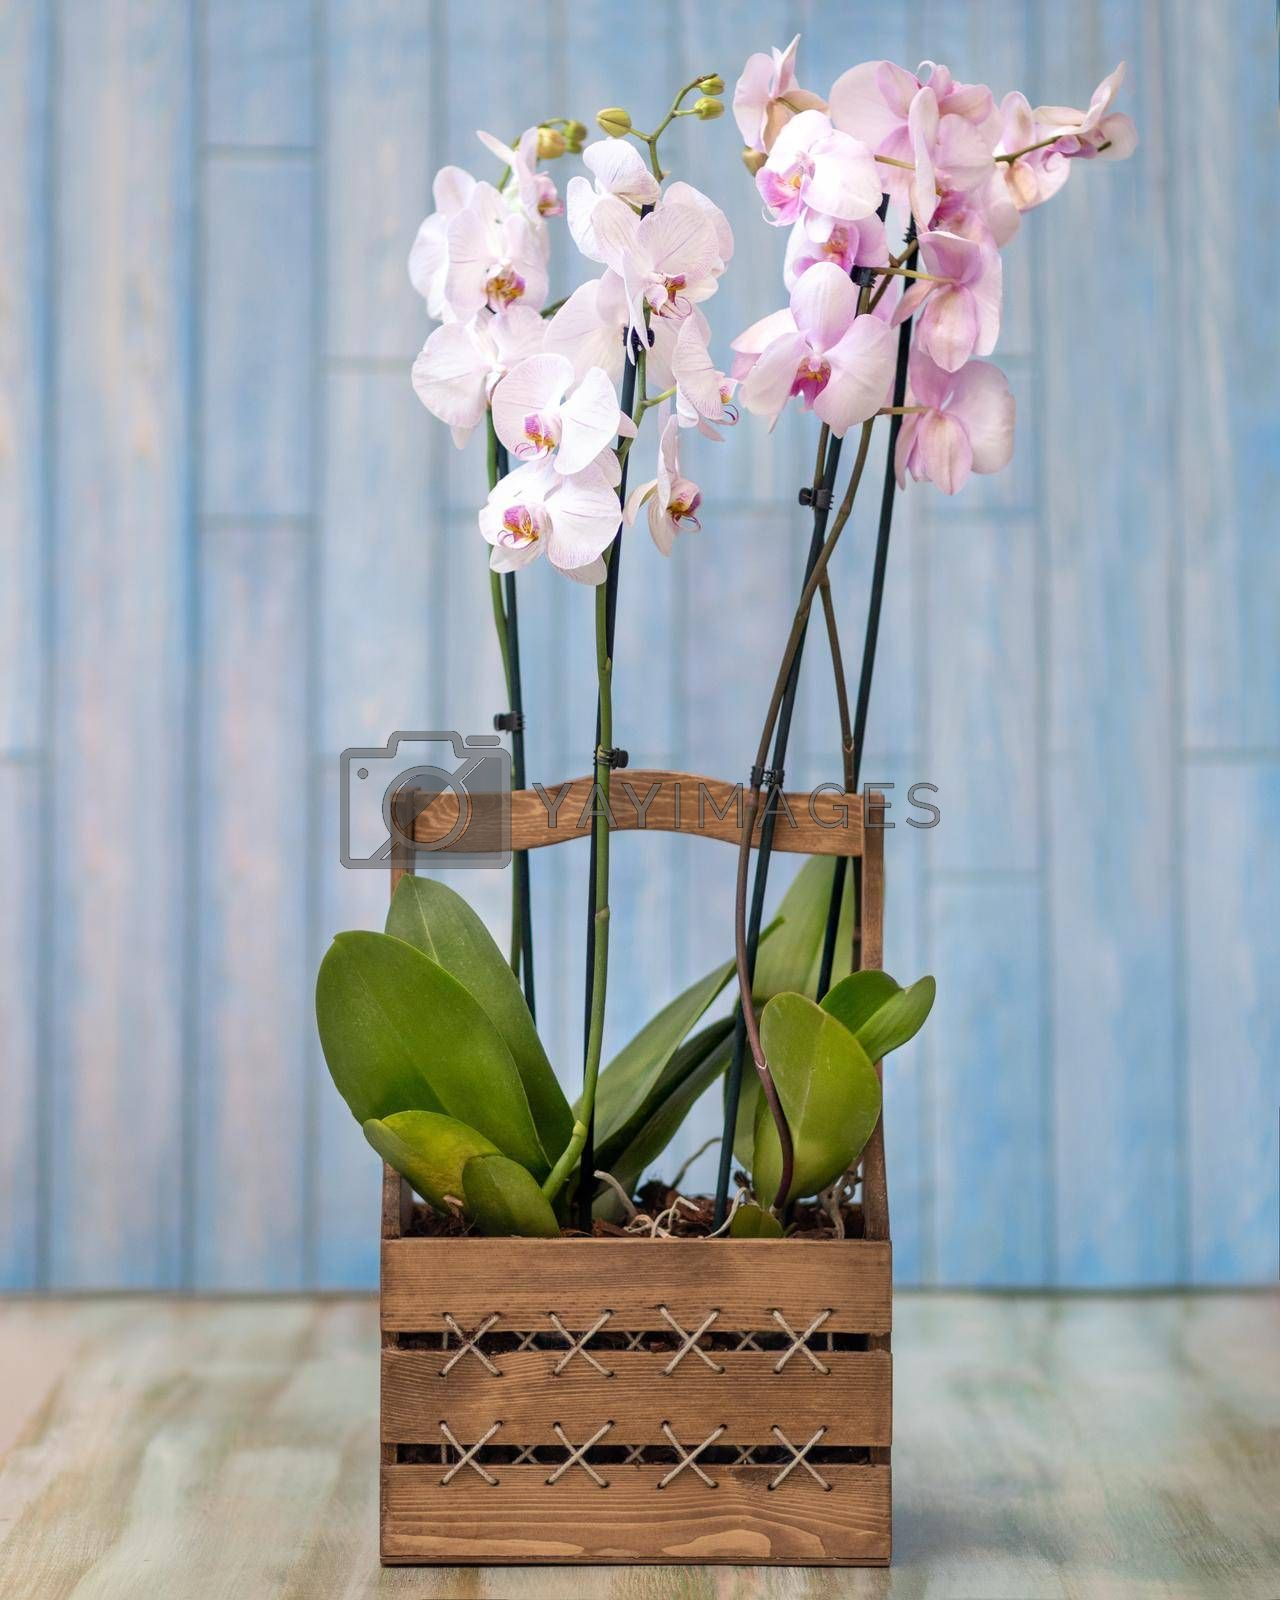 Phalaenopsist moth orchid in the wooden box